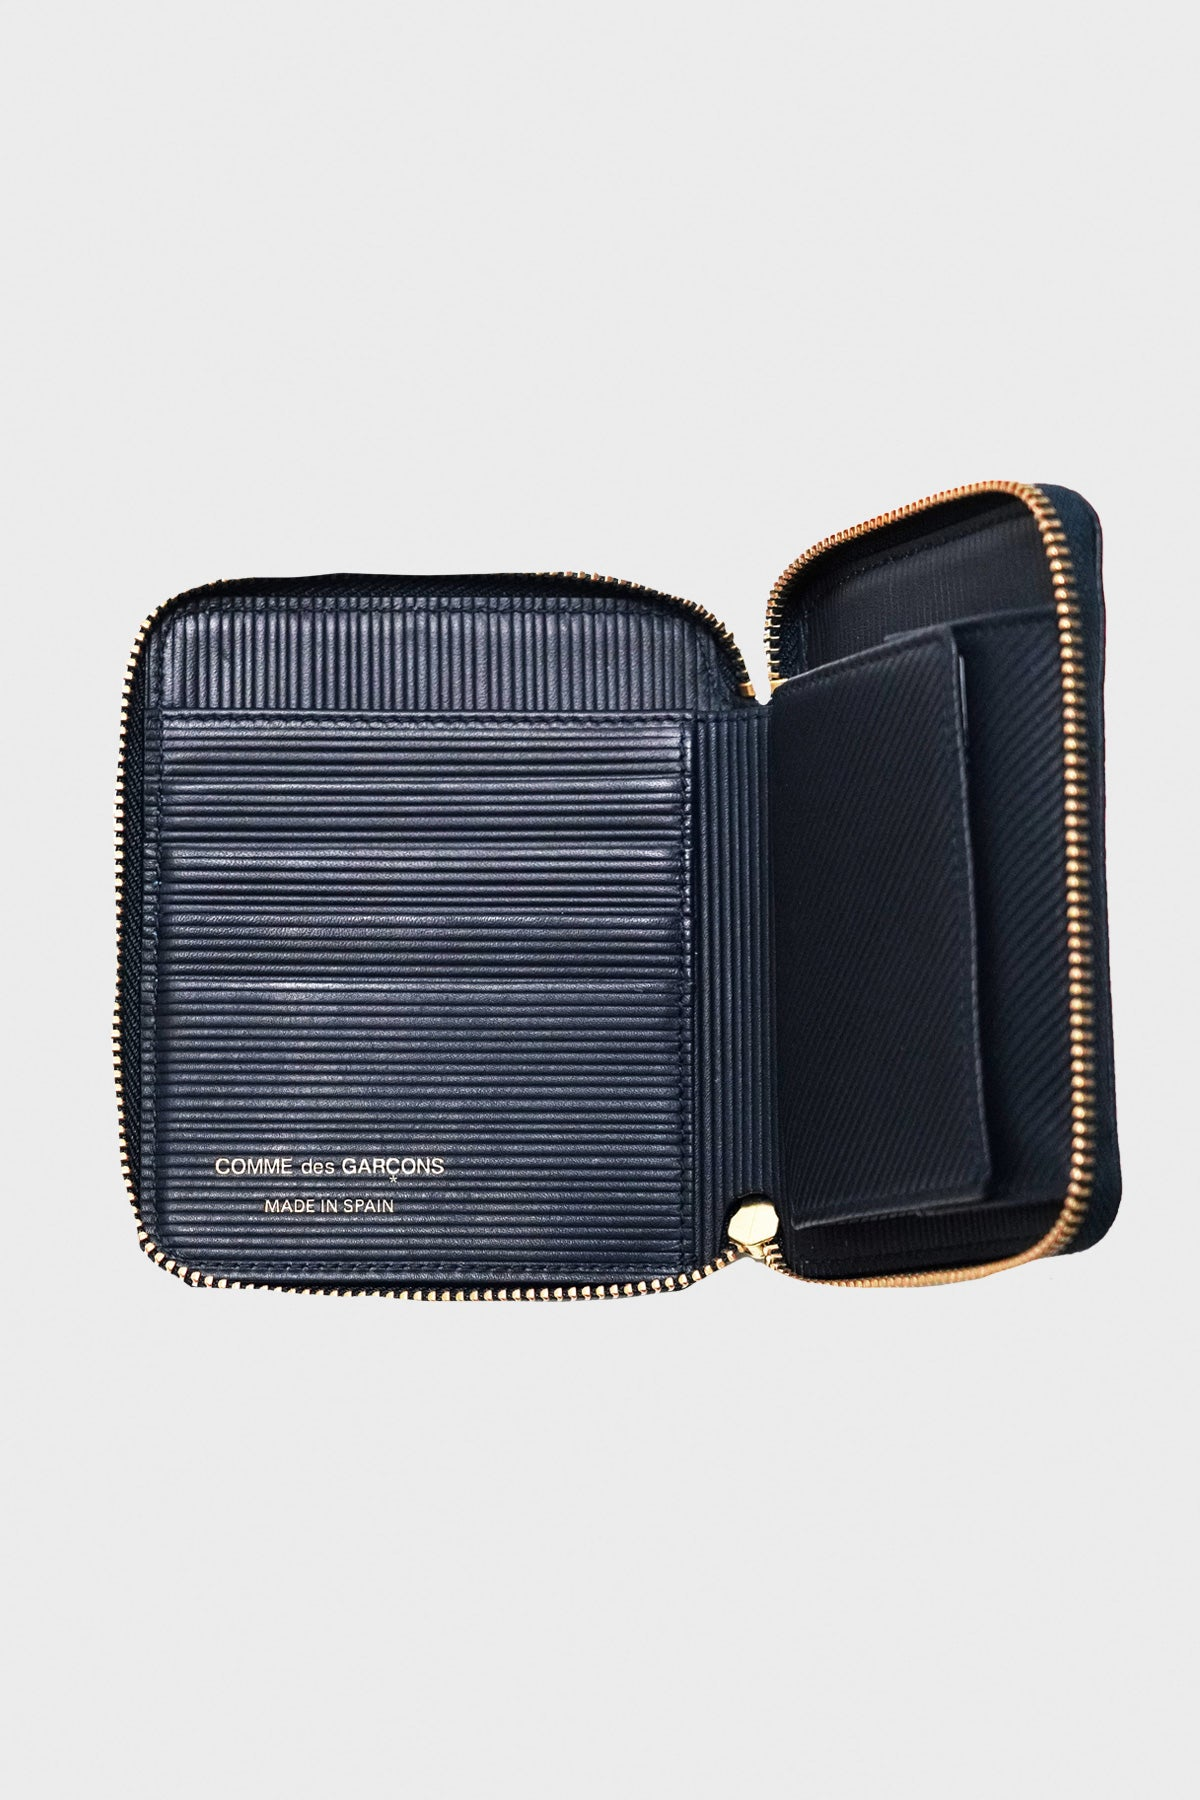 Comme des Garçons WALLET - Intersection Wallet - Navy - Canoe Club